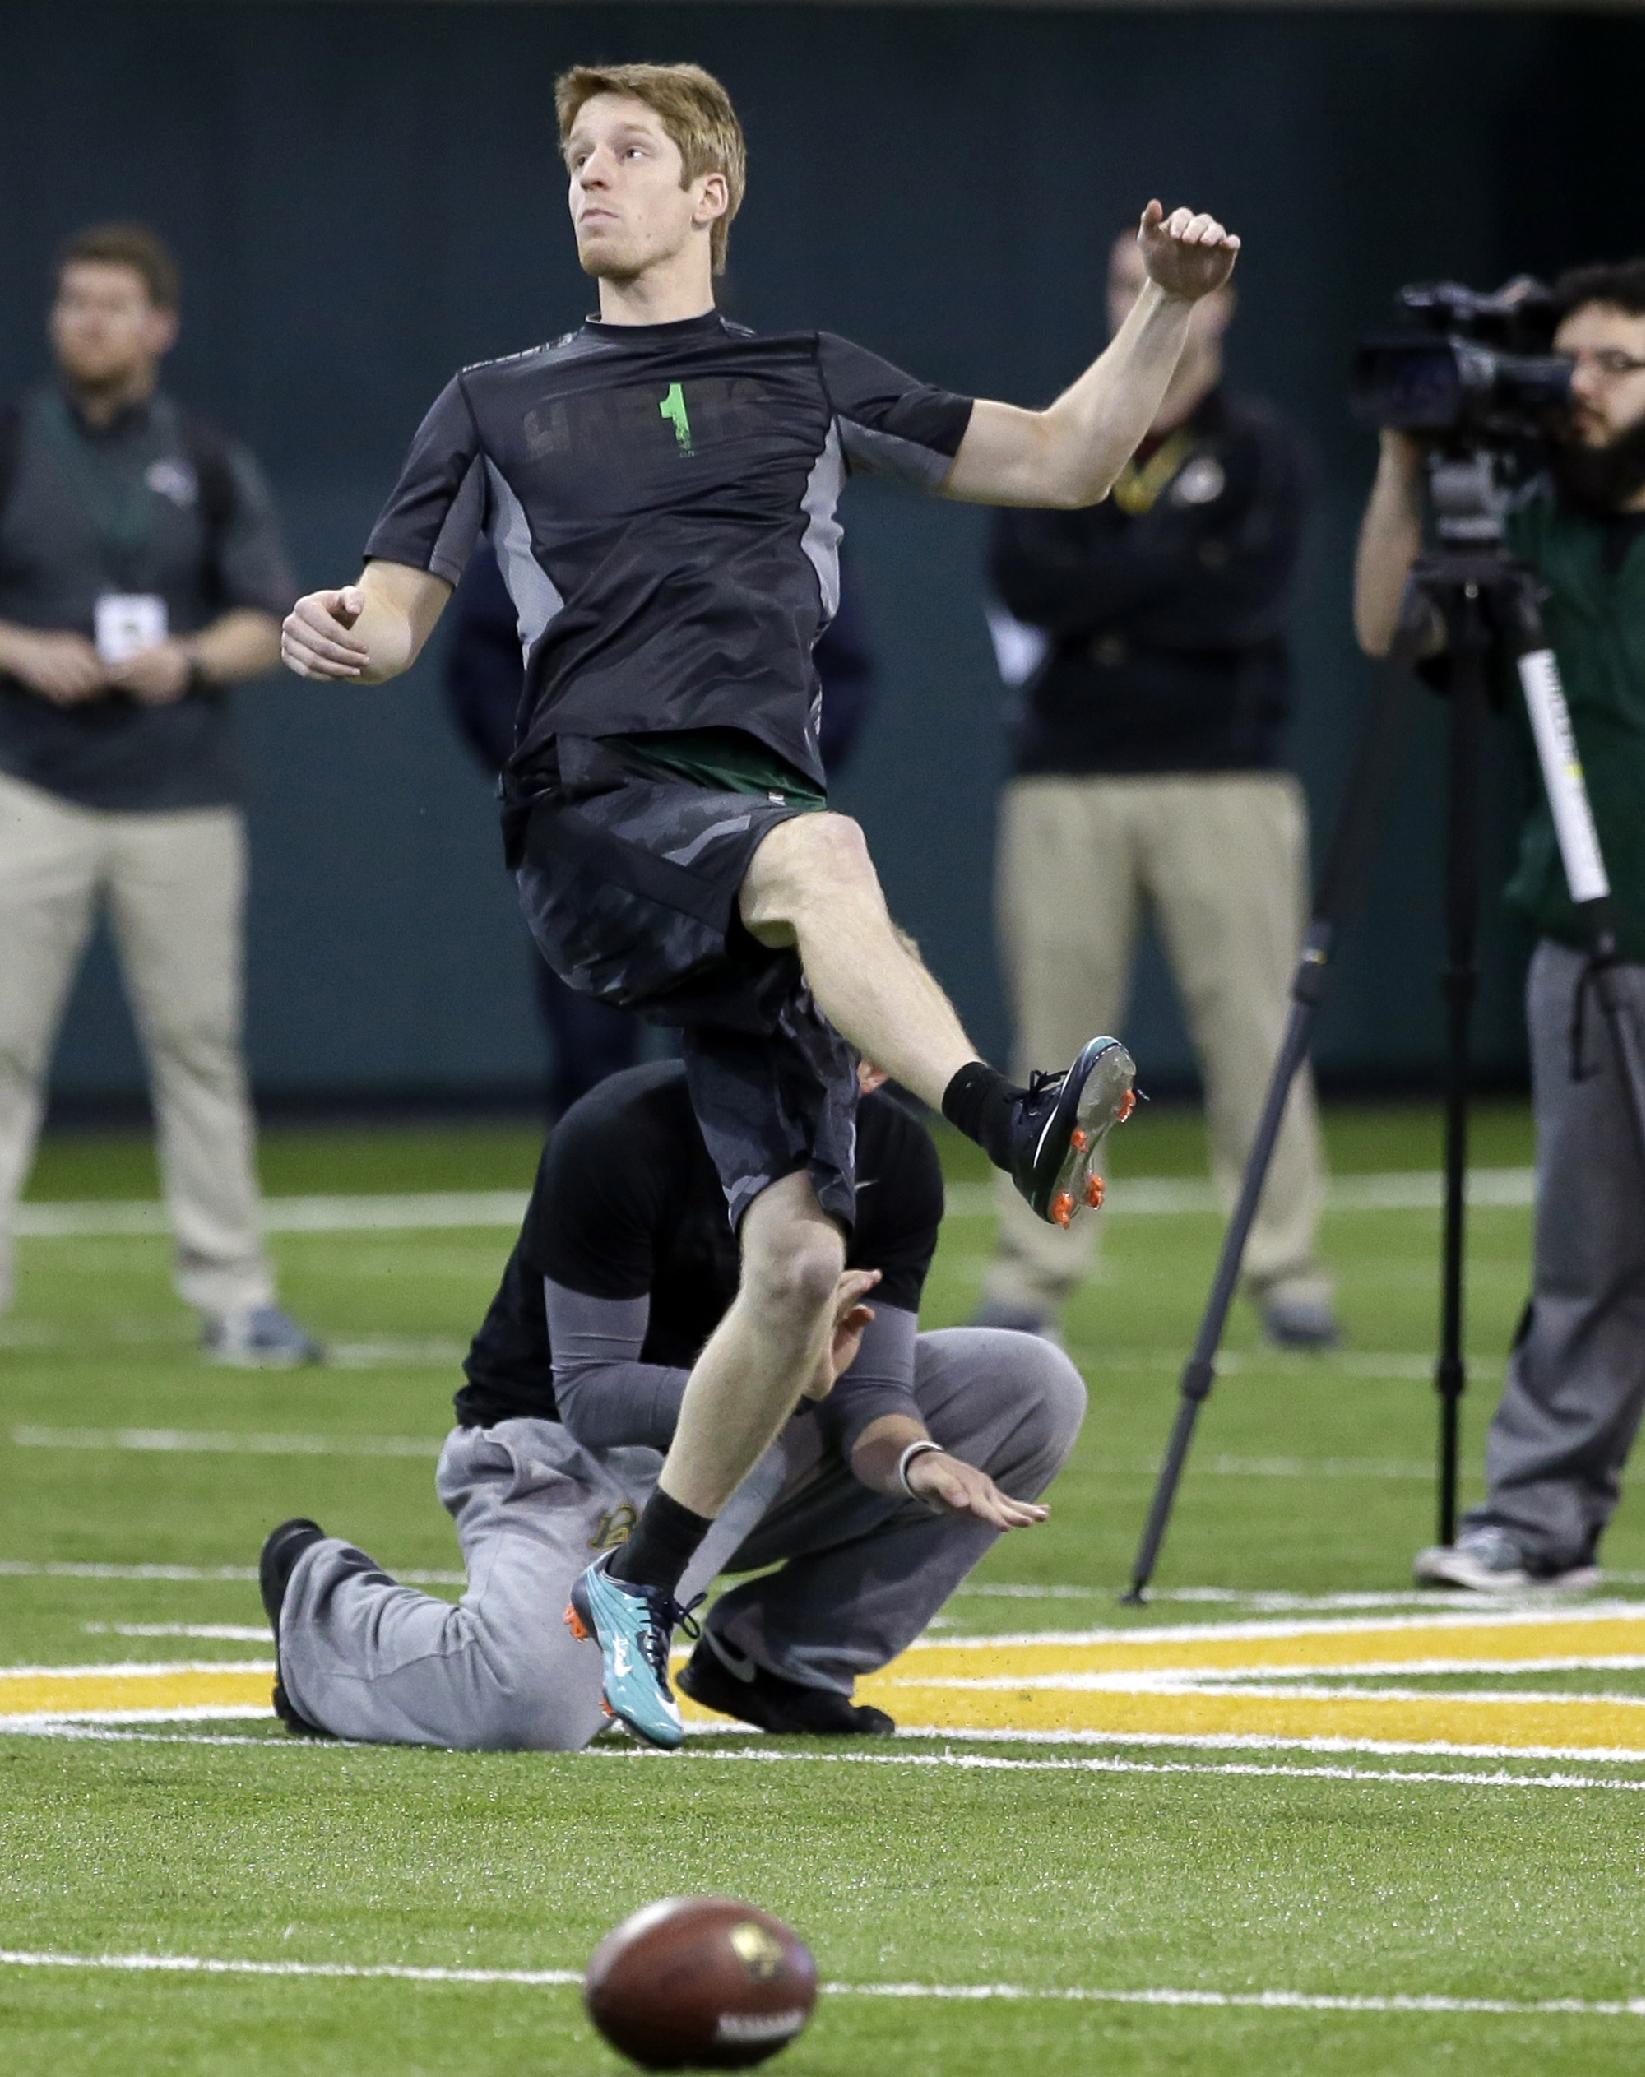 Baylor kicker Aaron Jones watches the flight of the ball as he works out during pro day for NFL football representatives on Wednesday, March 19, 2014, in Waco, Texas